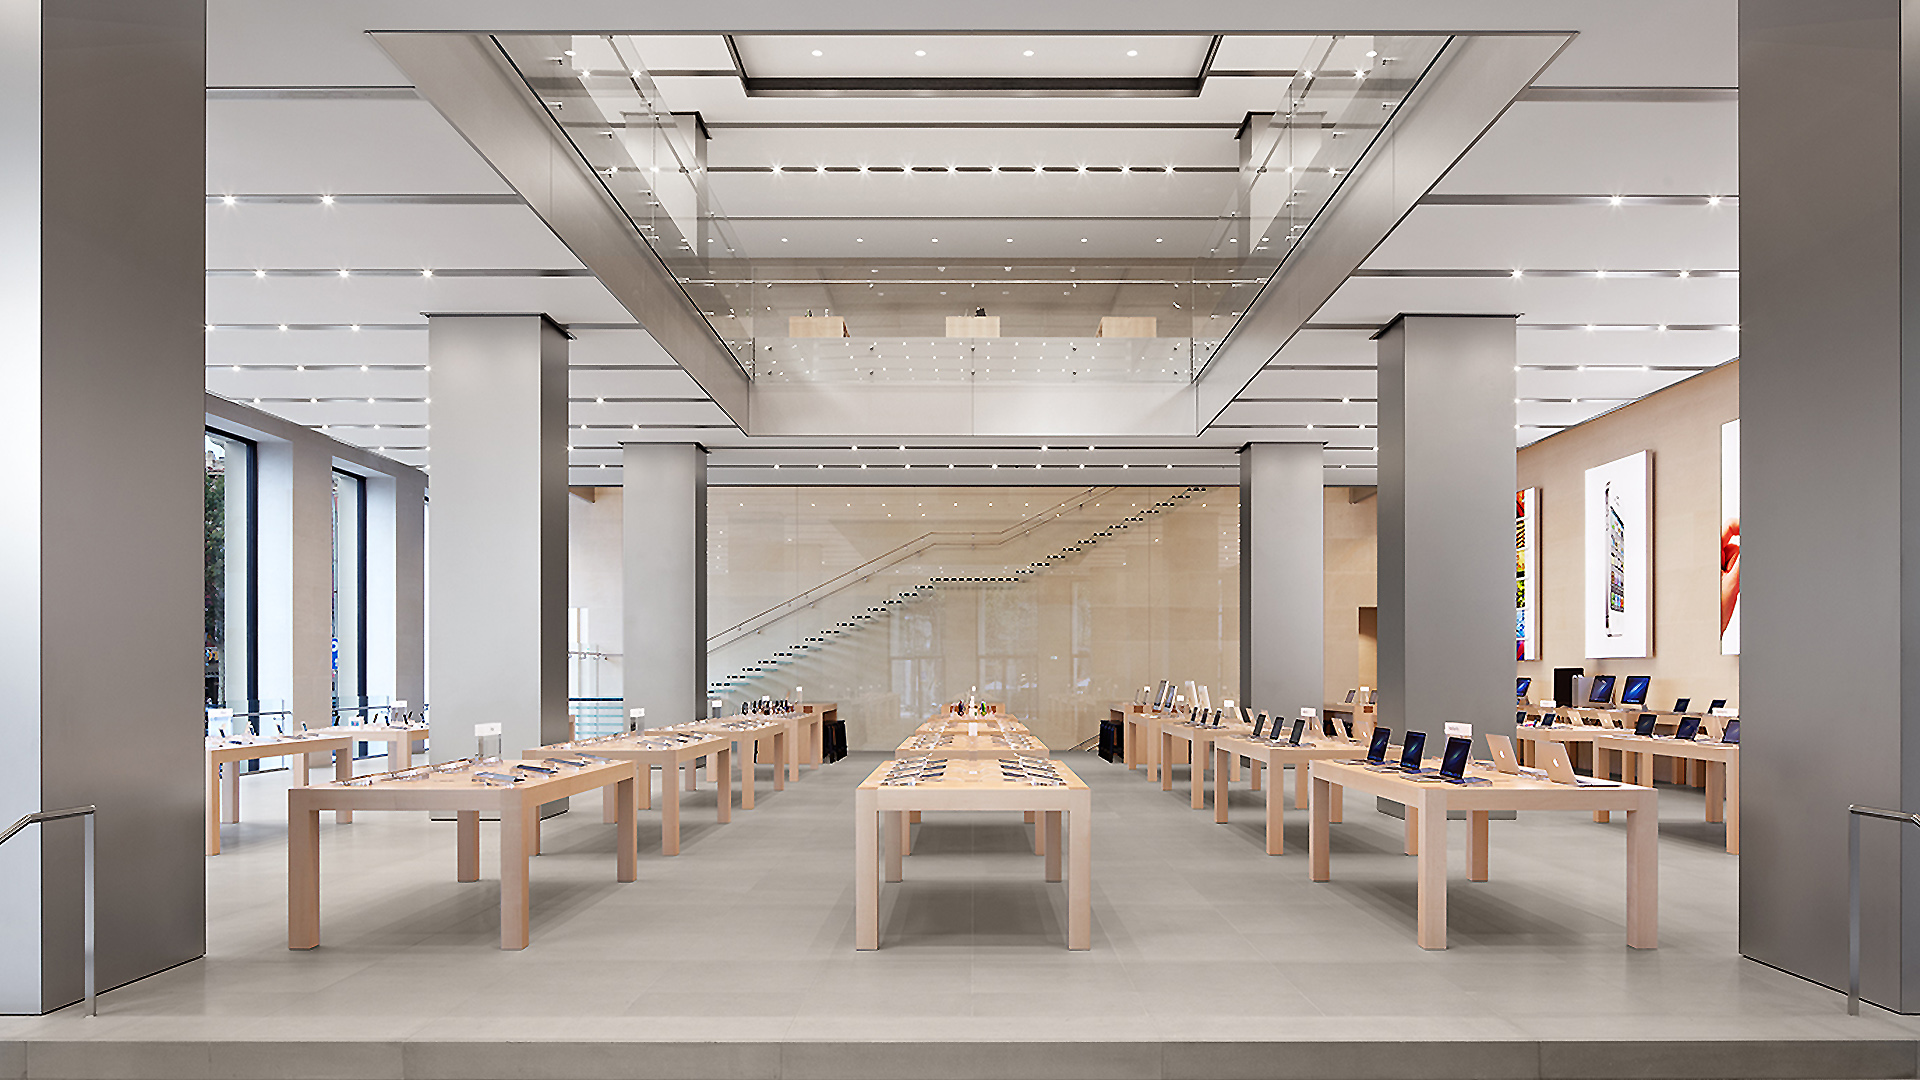 Passeig de Gràcia Apple Store temporarily closing February 10th, Video Wall and Forum likely on the way